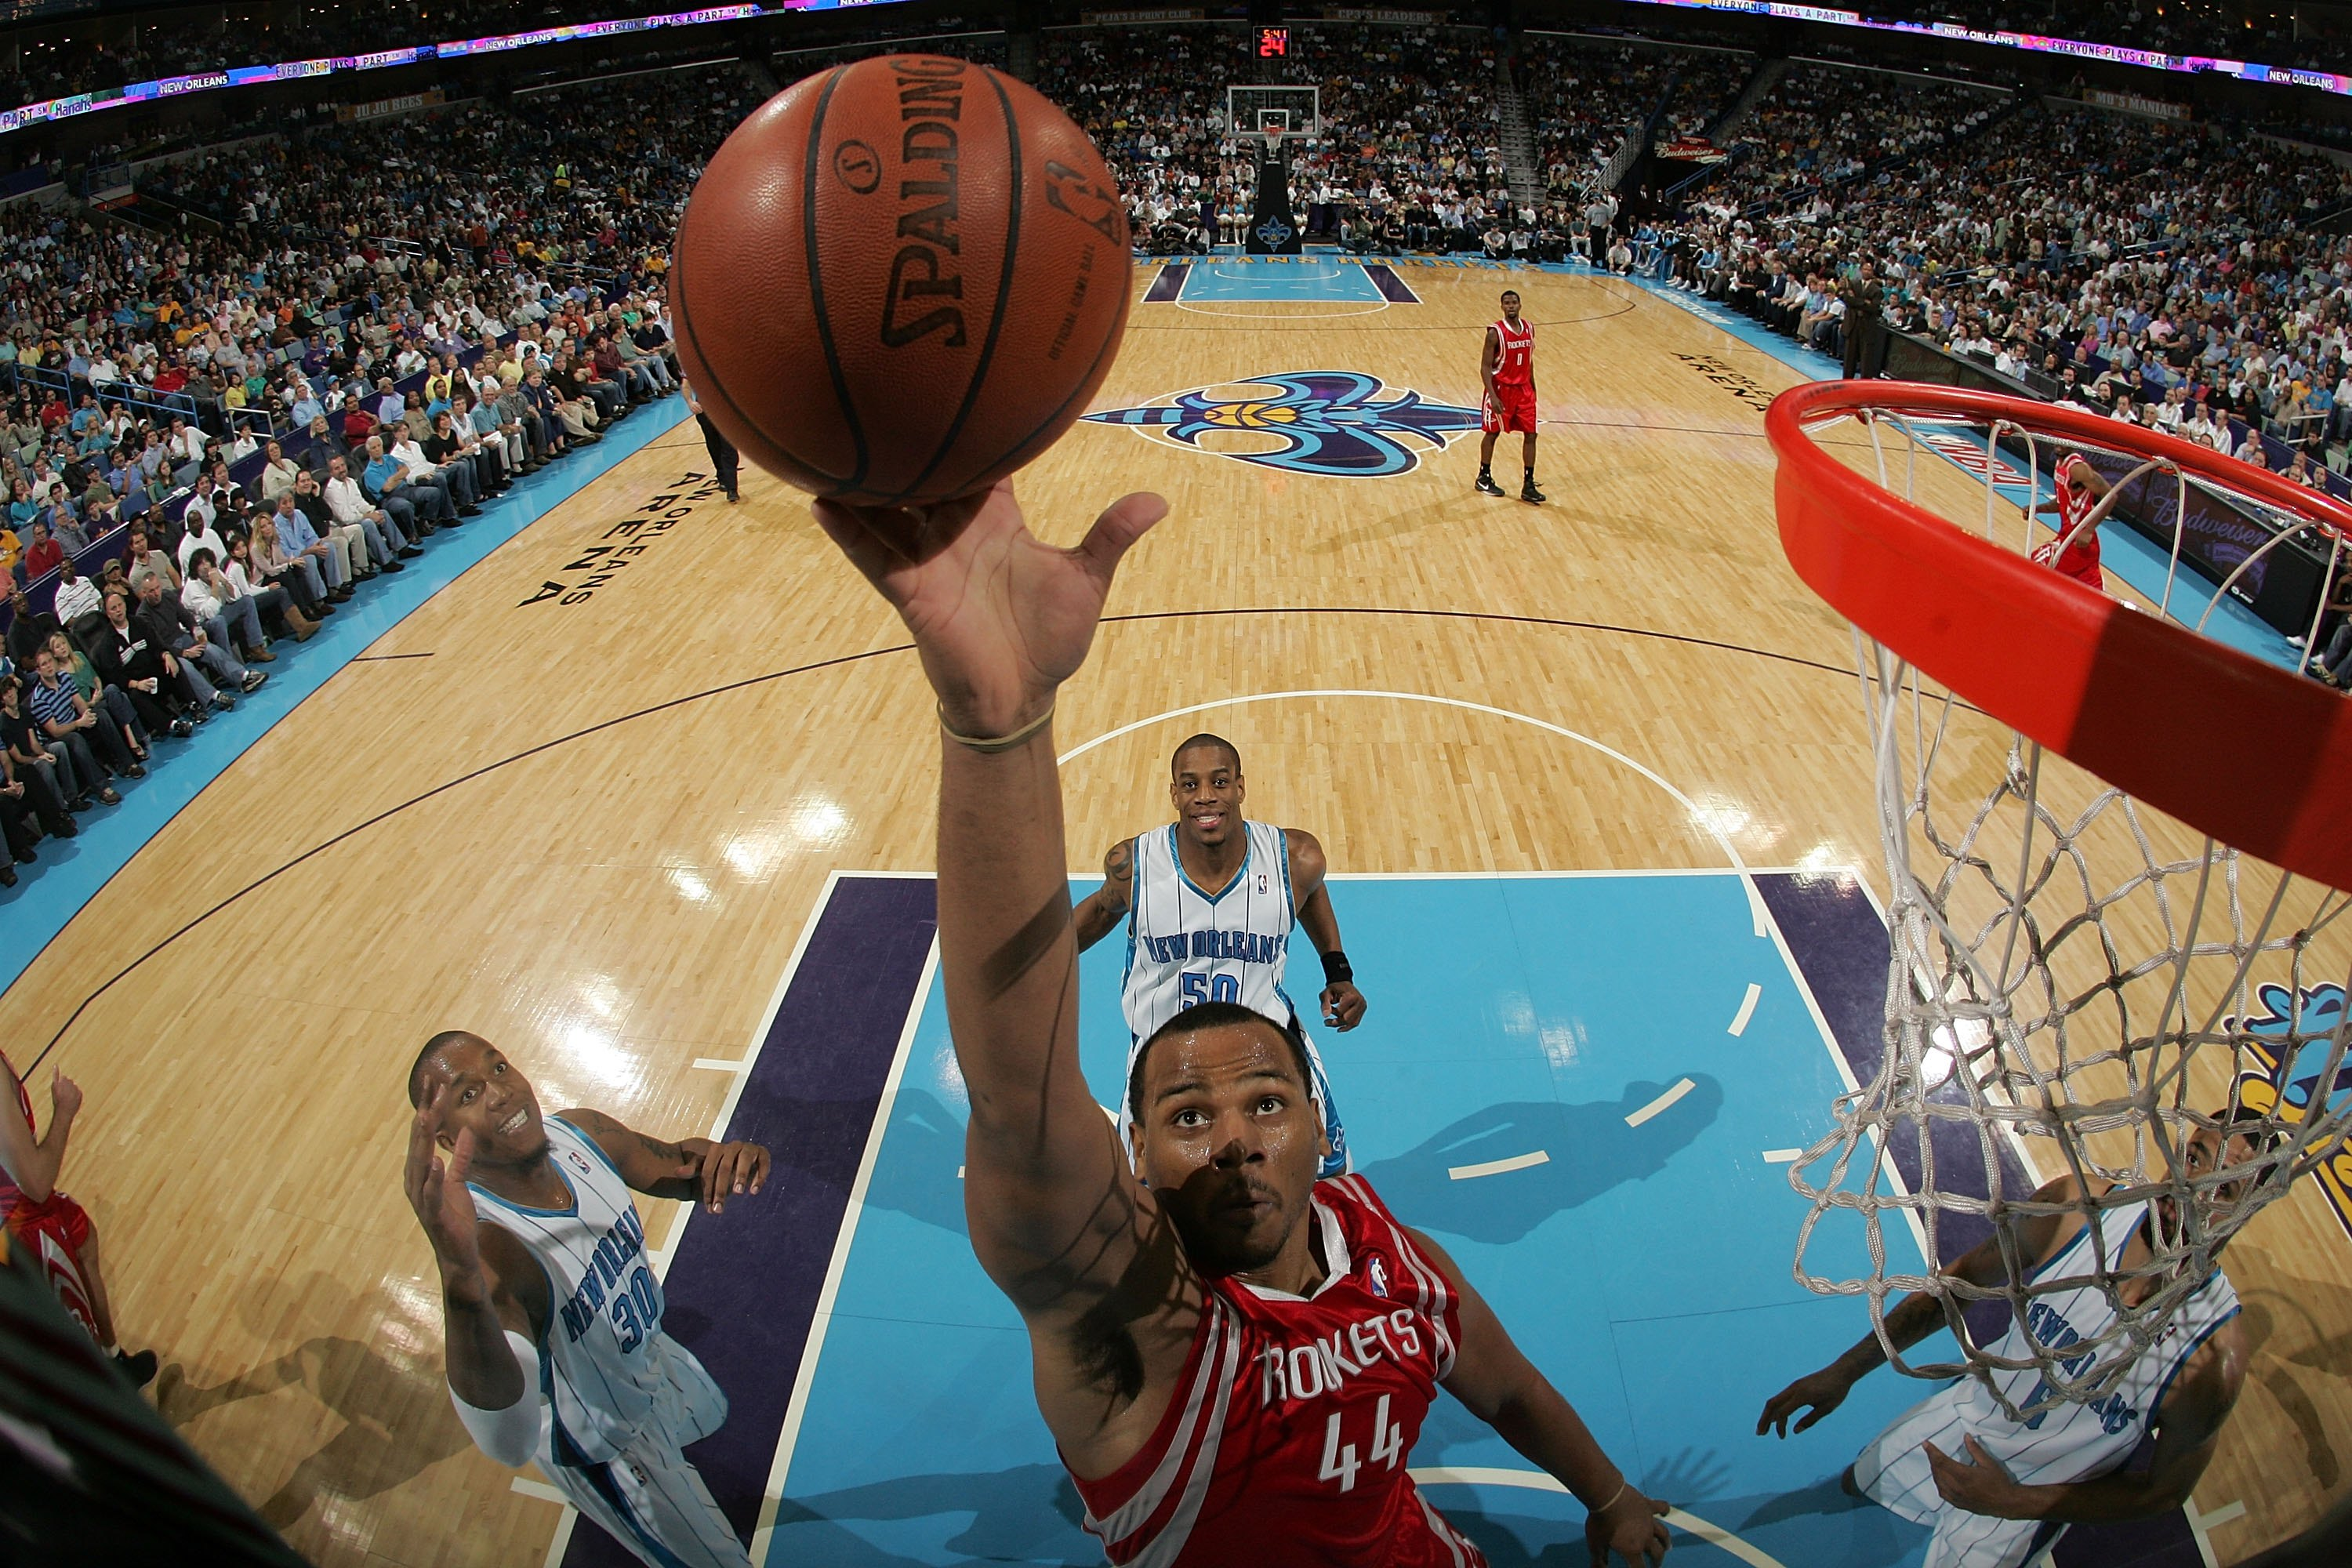 NEW ORLEANS - DECEMBER 26:  Chuck Hayes #44 of the Houston Rockets shoots during the game against the New Orleans Hornets on December 26, 2008 at the New Orleans Arena in New Orleans, Louisiana.  NOTE TO USER: User expressly acknowledges and agrees that,